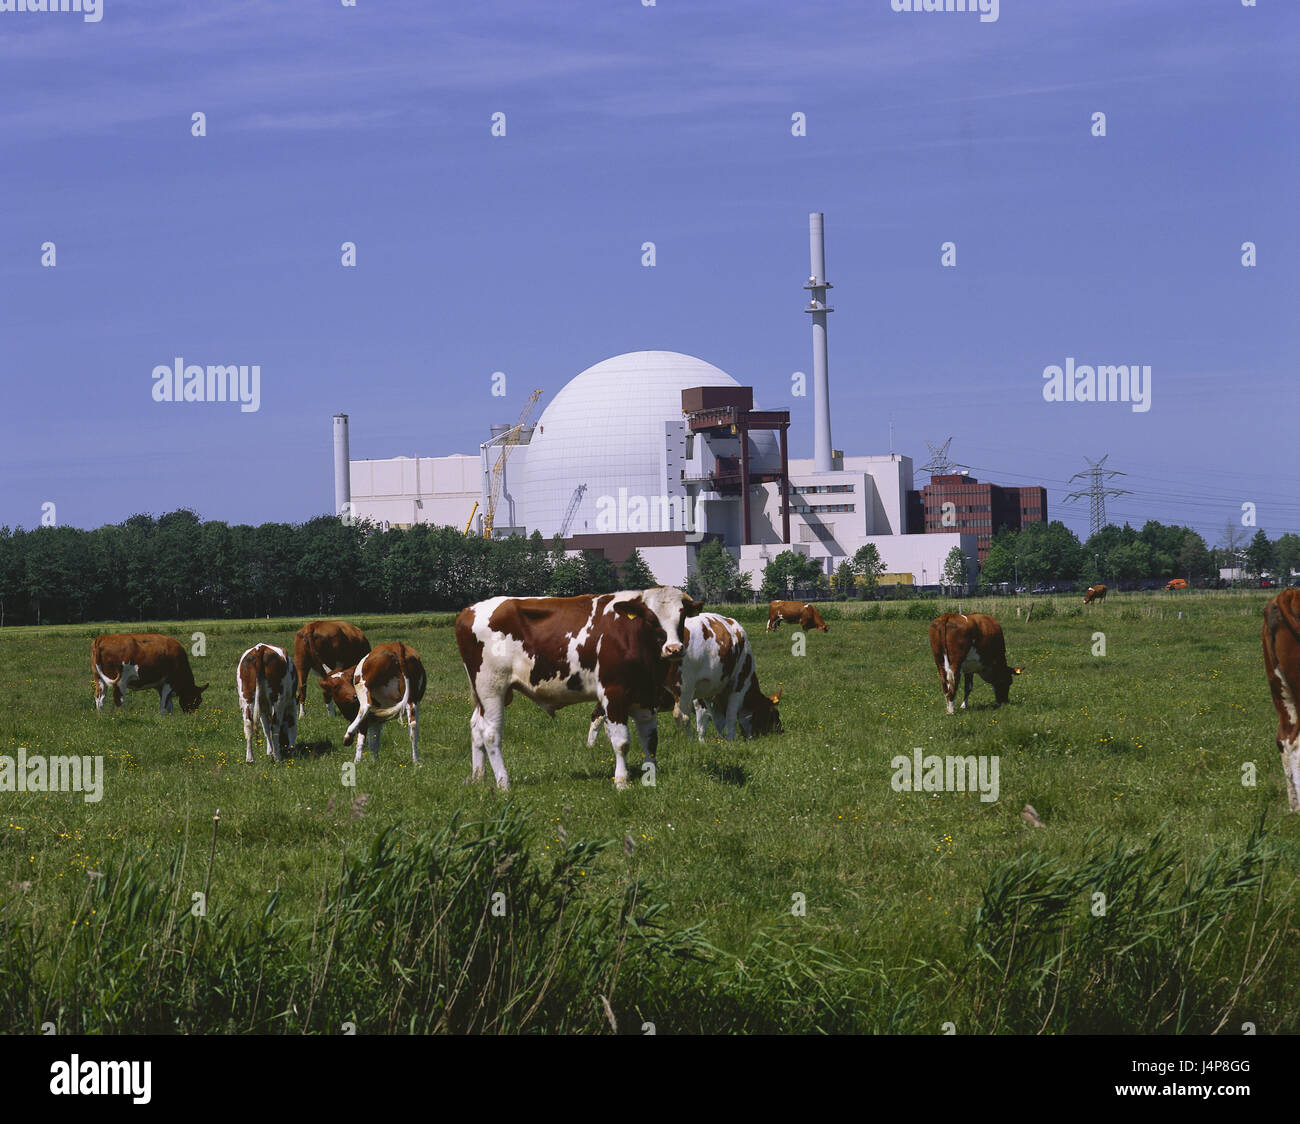 Germany, Schleswig - Holstein, village Brok, nuclear power plant, pasture, cows, energy, power production, current, - Stock Image